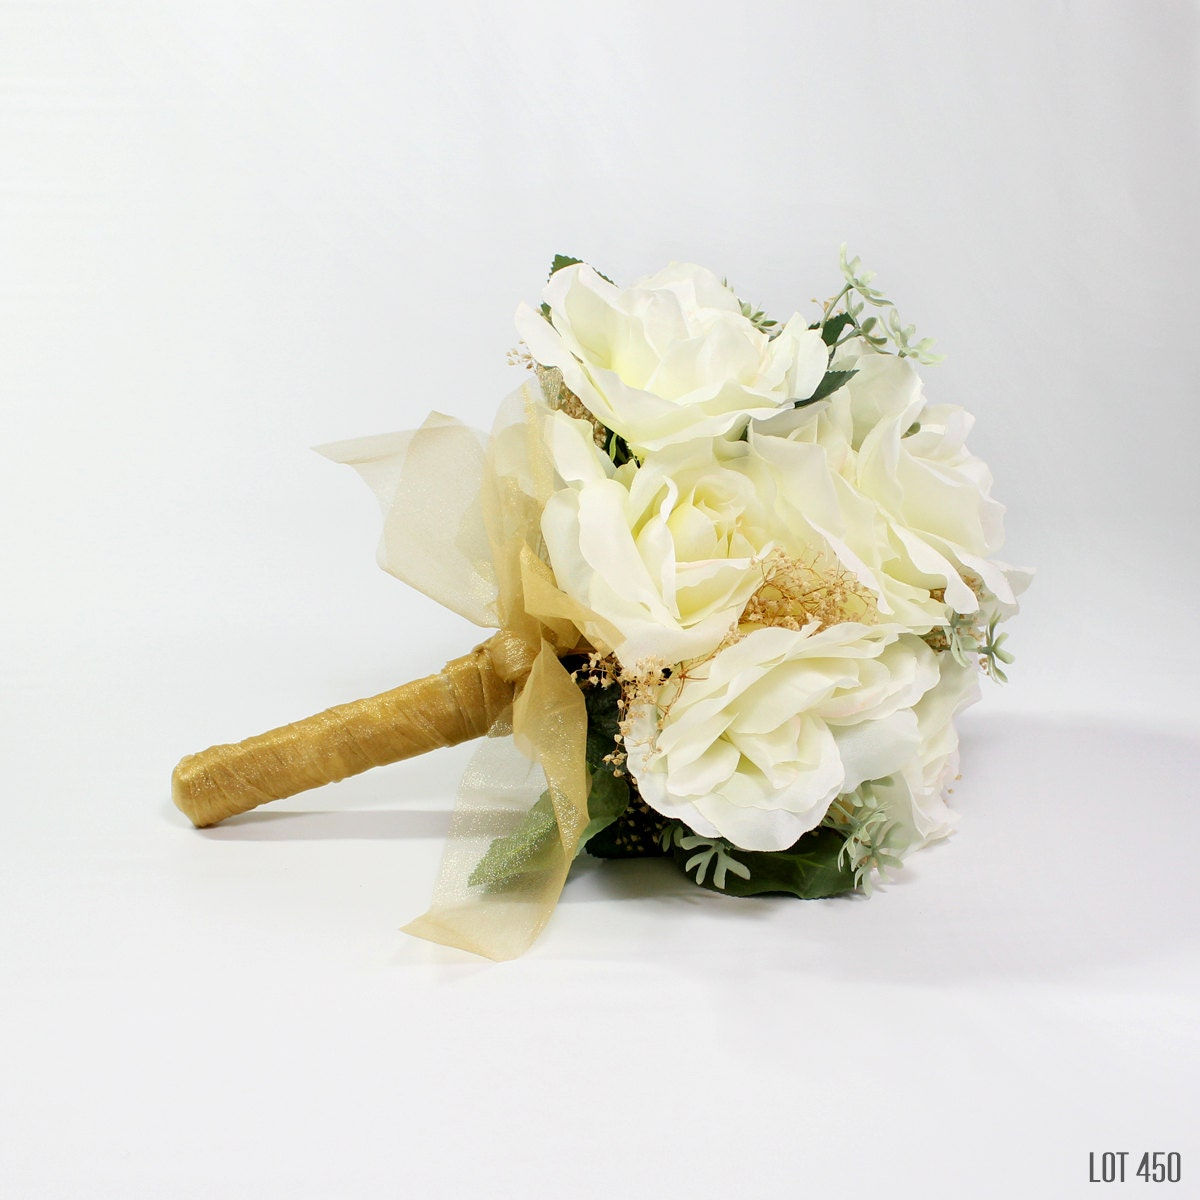 Gold Wedding Flowers: Bride Bouquet Silk Flowers Wedding Gold And White Bridal